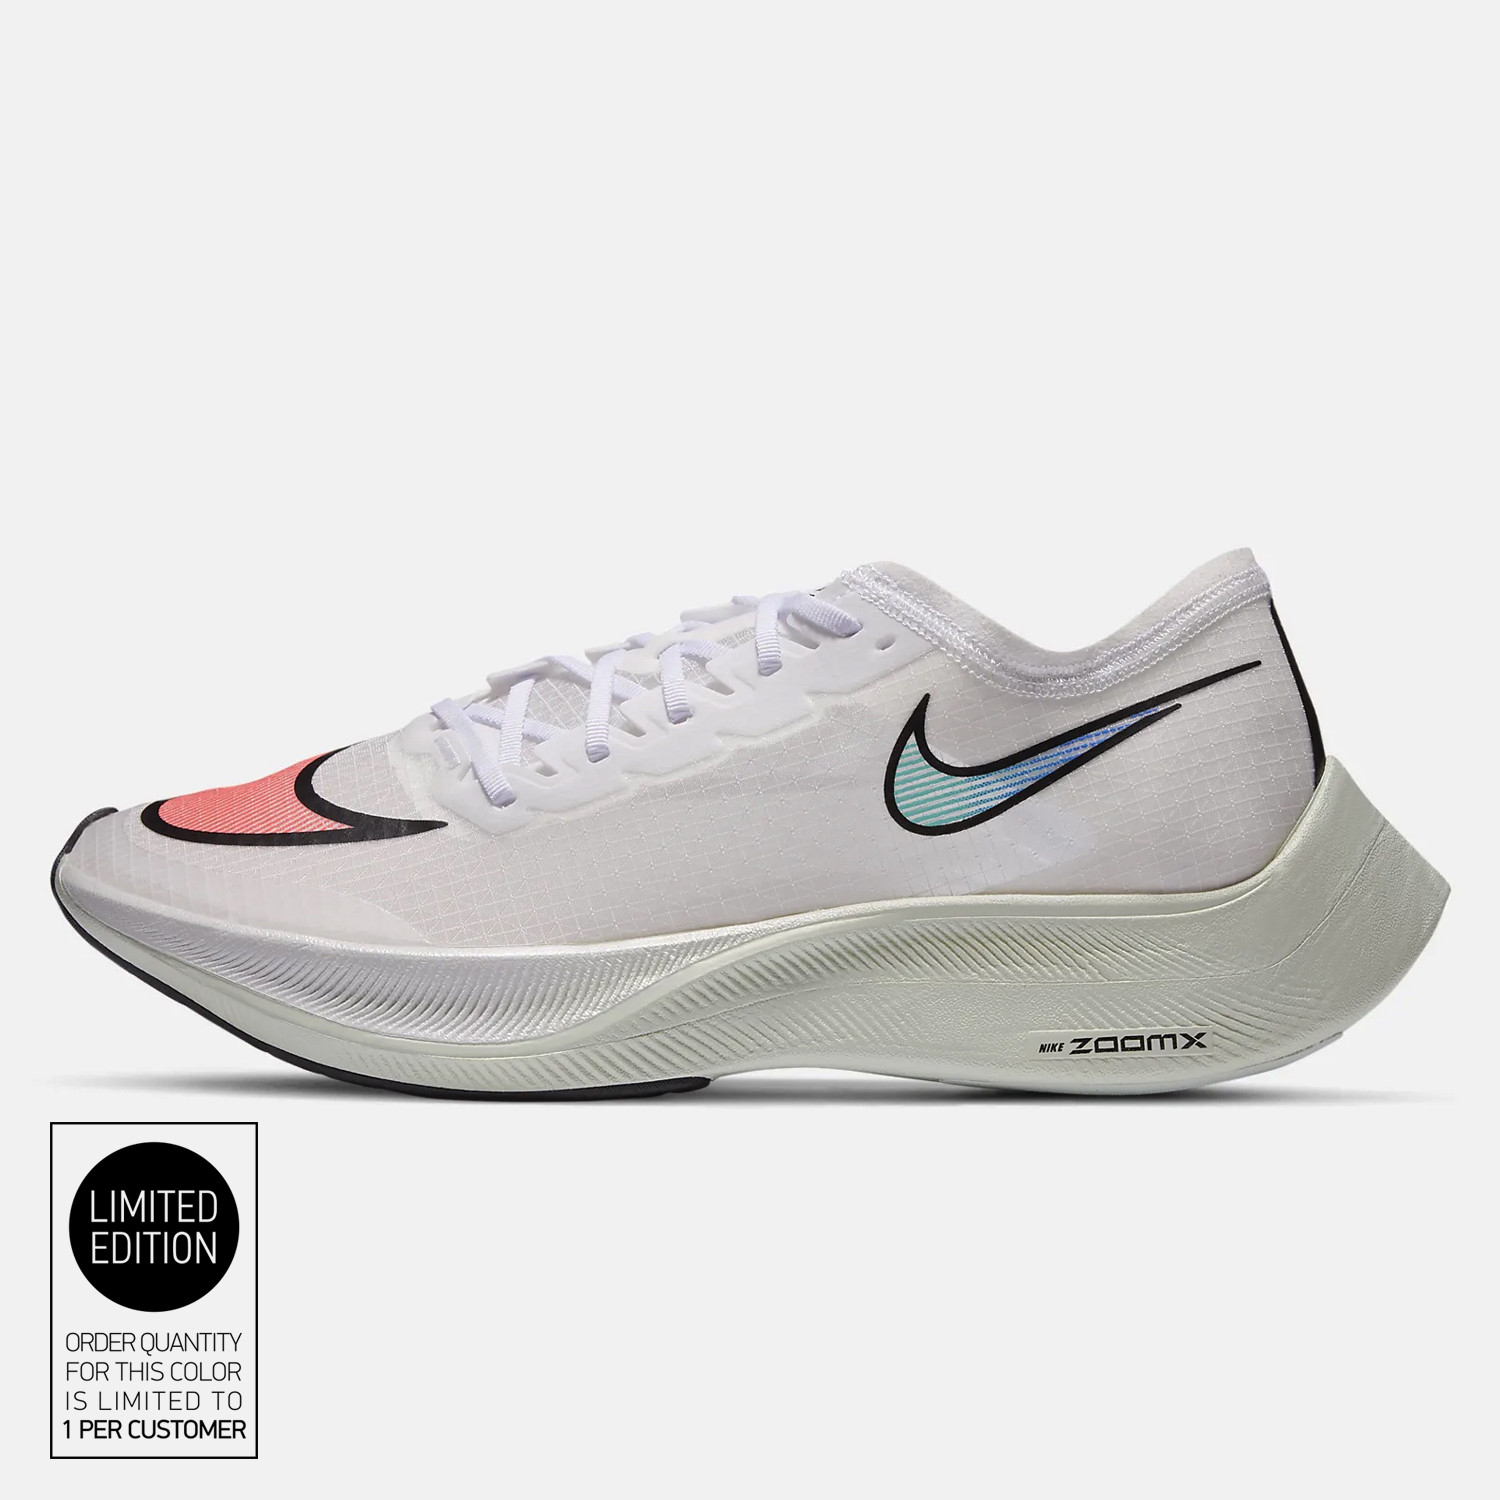 Nike Zoom Vaporfly NEXT% Running Παπούτσια (9000054466_46075)